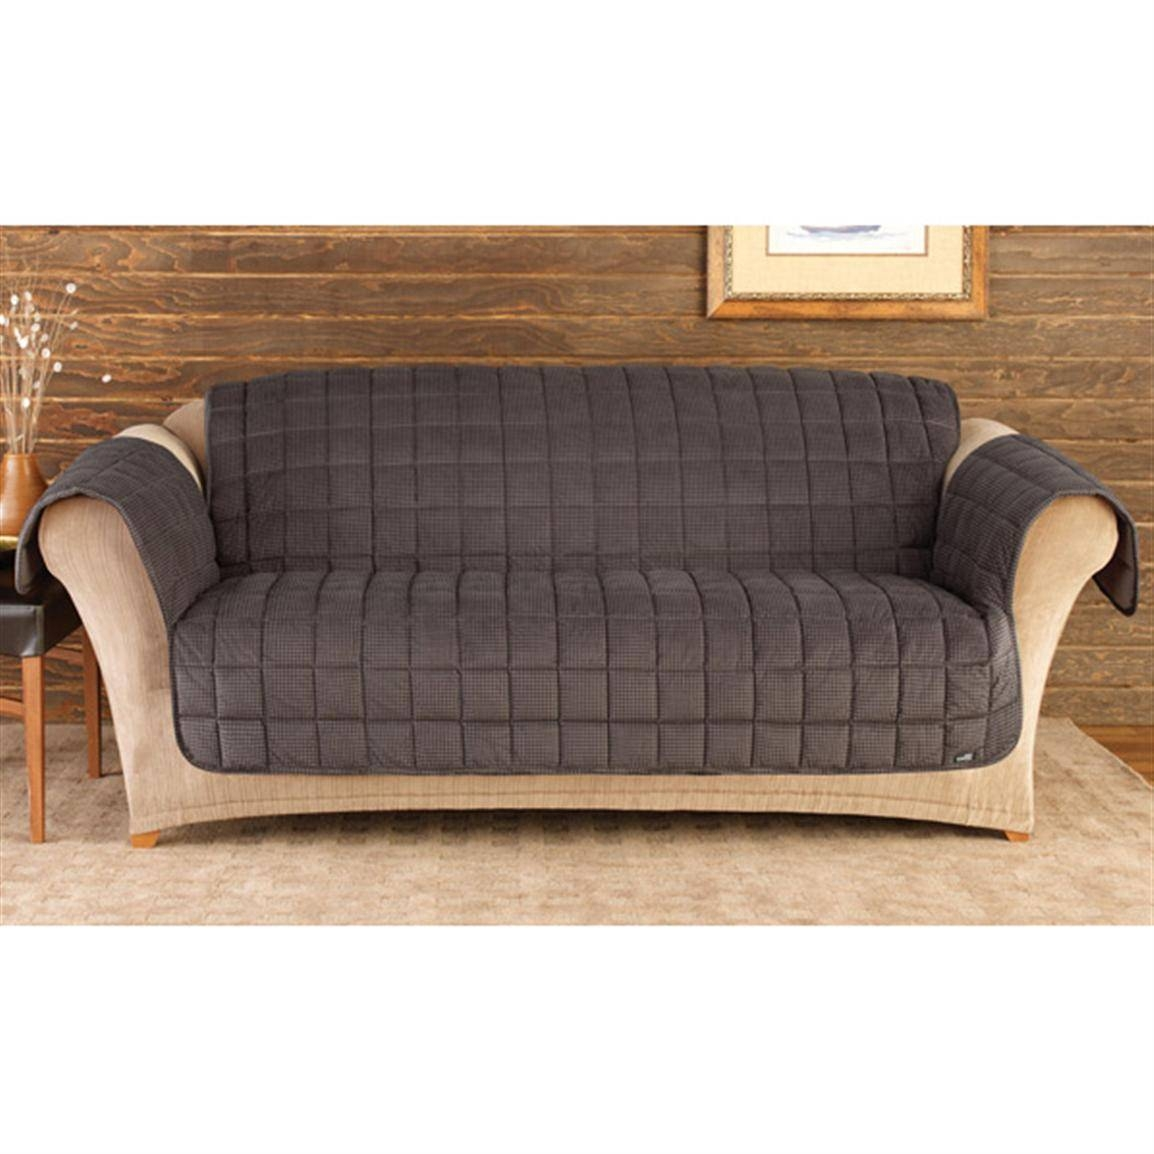 Sure Fit Deluxe Velvet Mini-Check Sofa Pet Cover, Black And Brown throughout Sofas With Black Cover (Image 14 of 15)